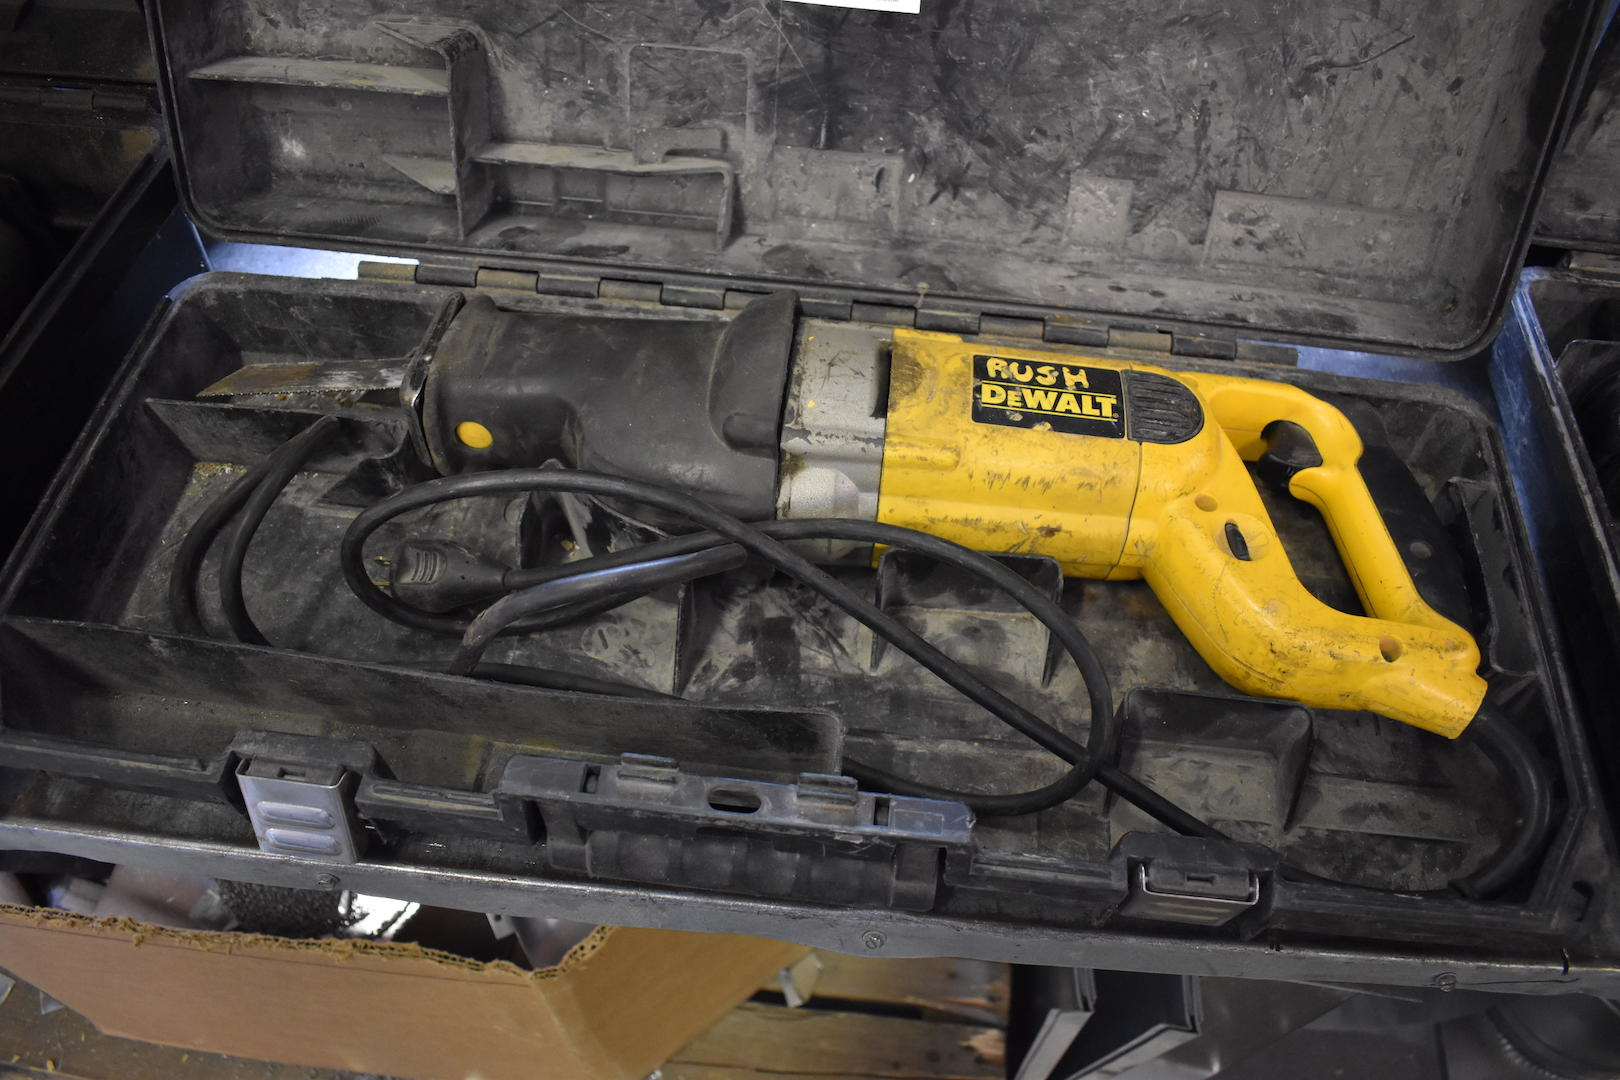 "Lot 3 - Dewalt Model DW309 1-1/4"" Stroke Electric Variable Speed Reciprocating Saw, S/N 35797"